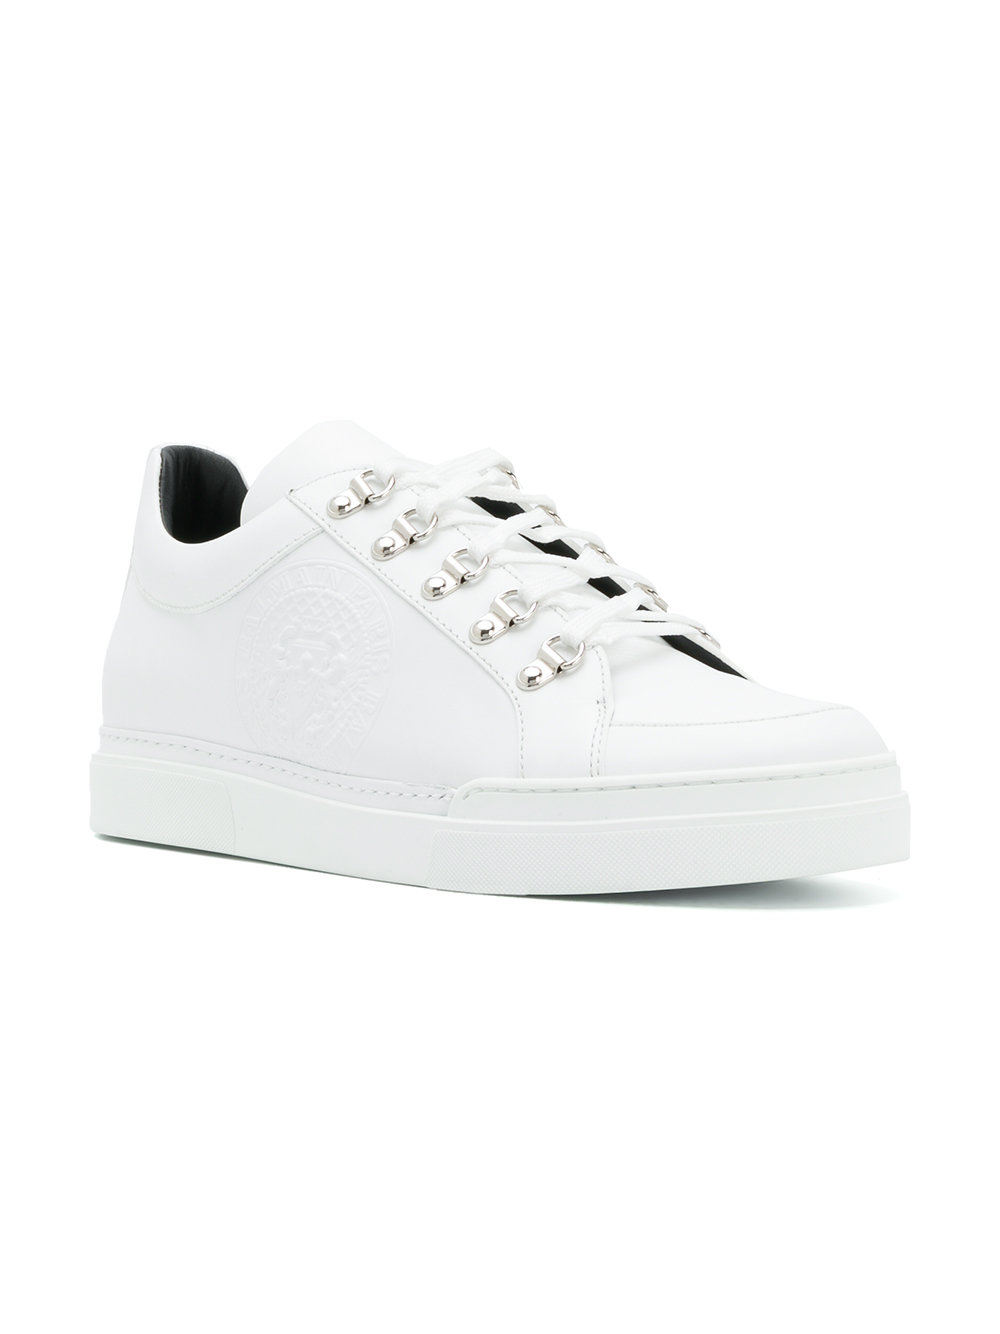 Balmain   Low Top Eyelet Trainer